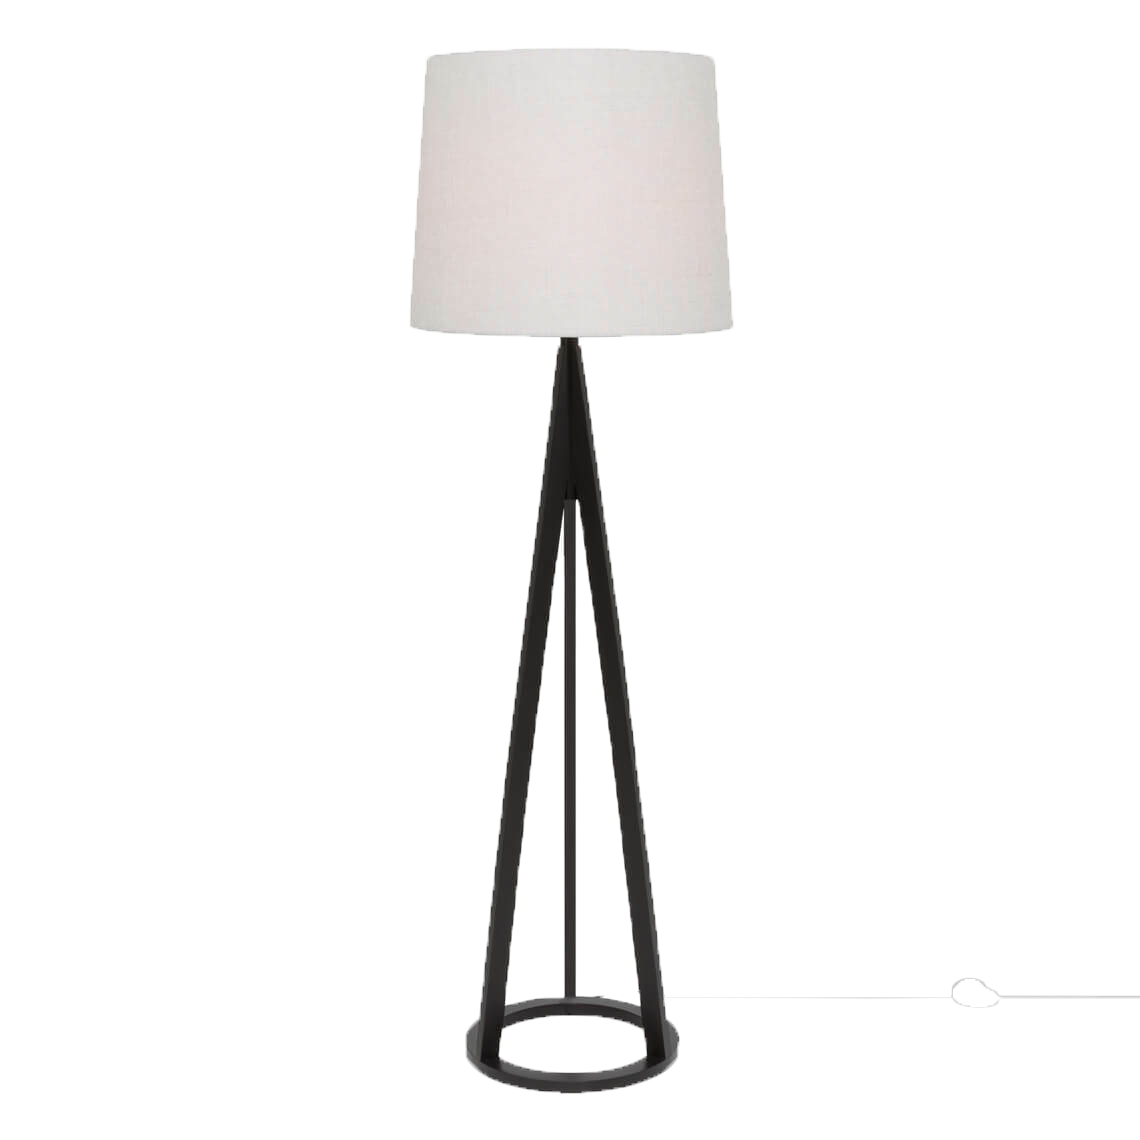 39137 Popular Category - Deep etches_Floor Lamps.png